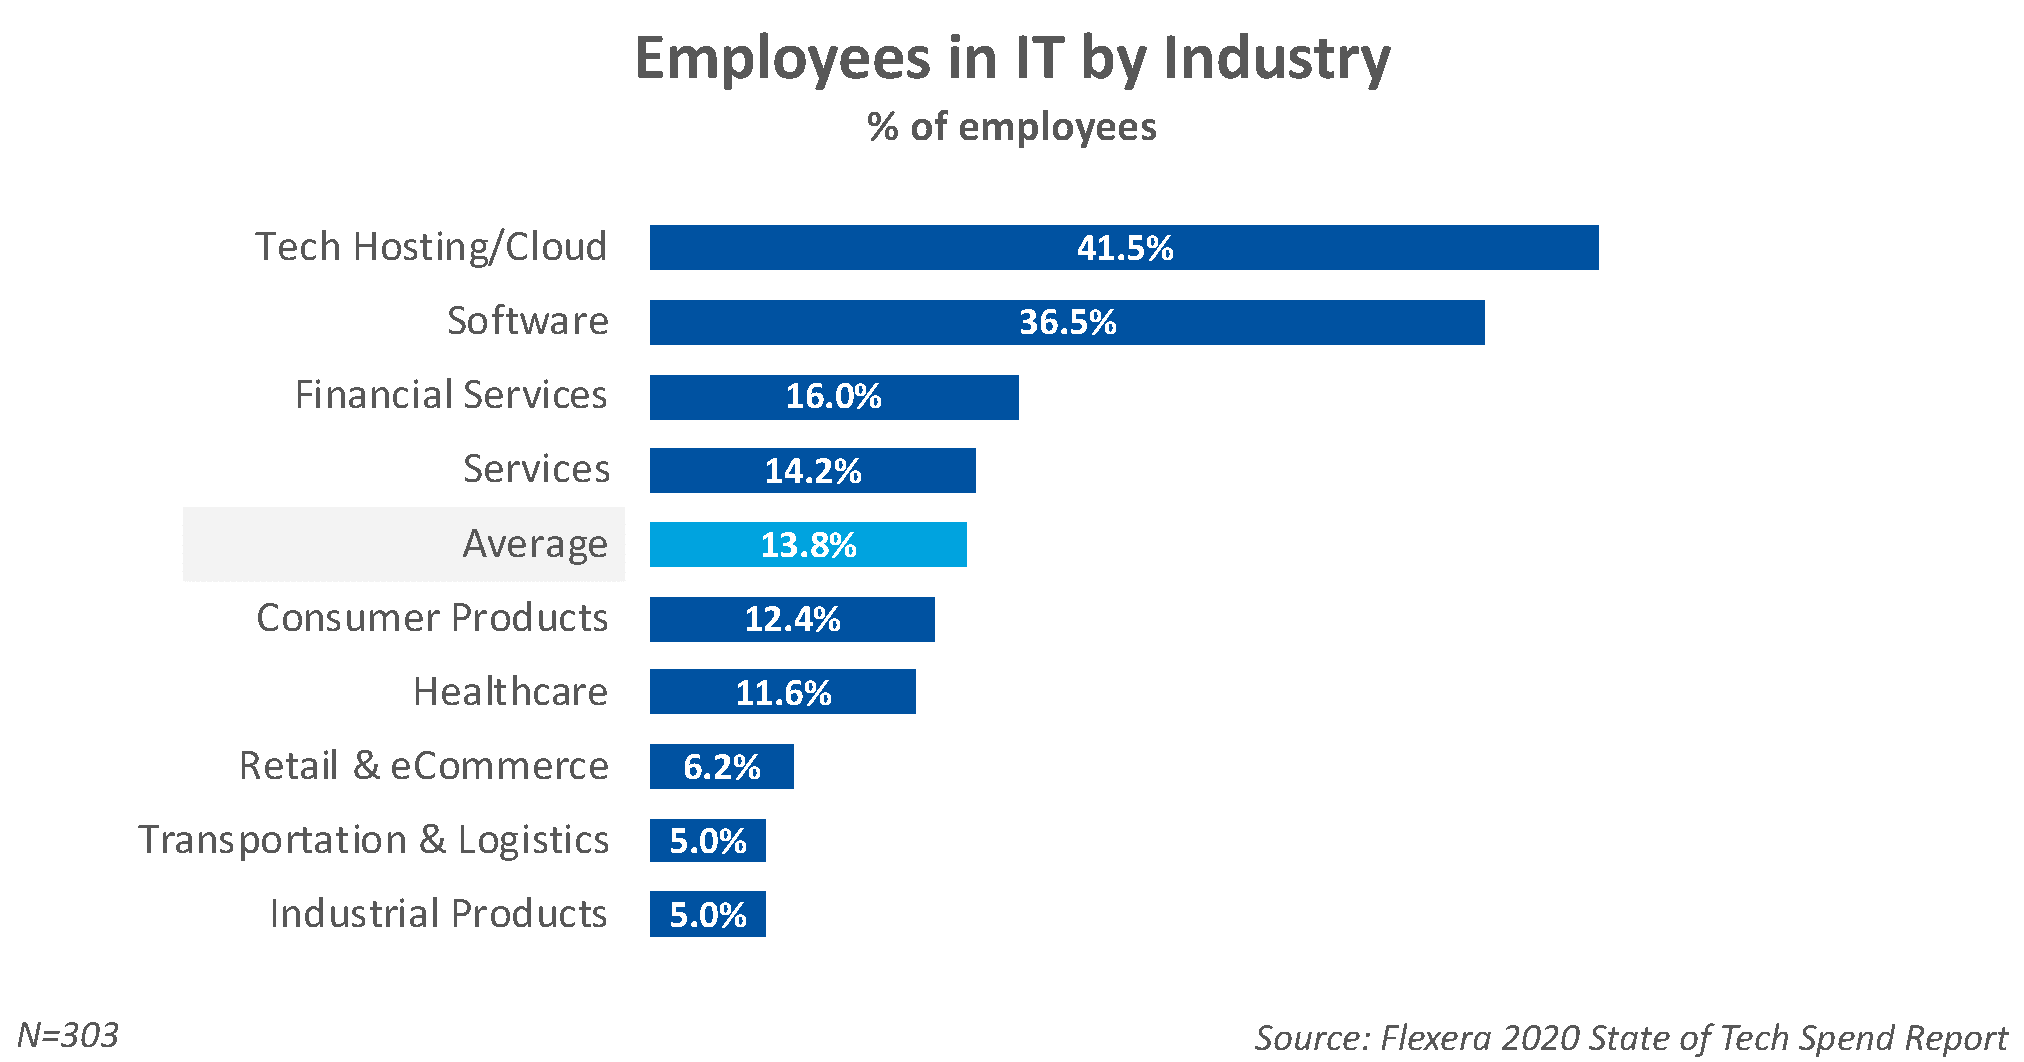 Percentage of Employees In IT by Industry